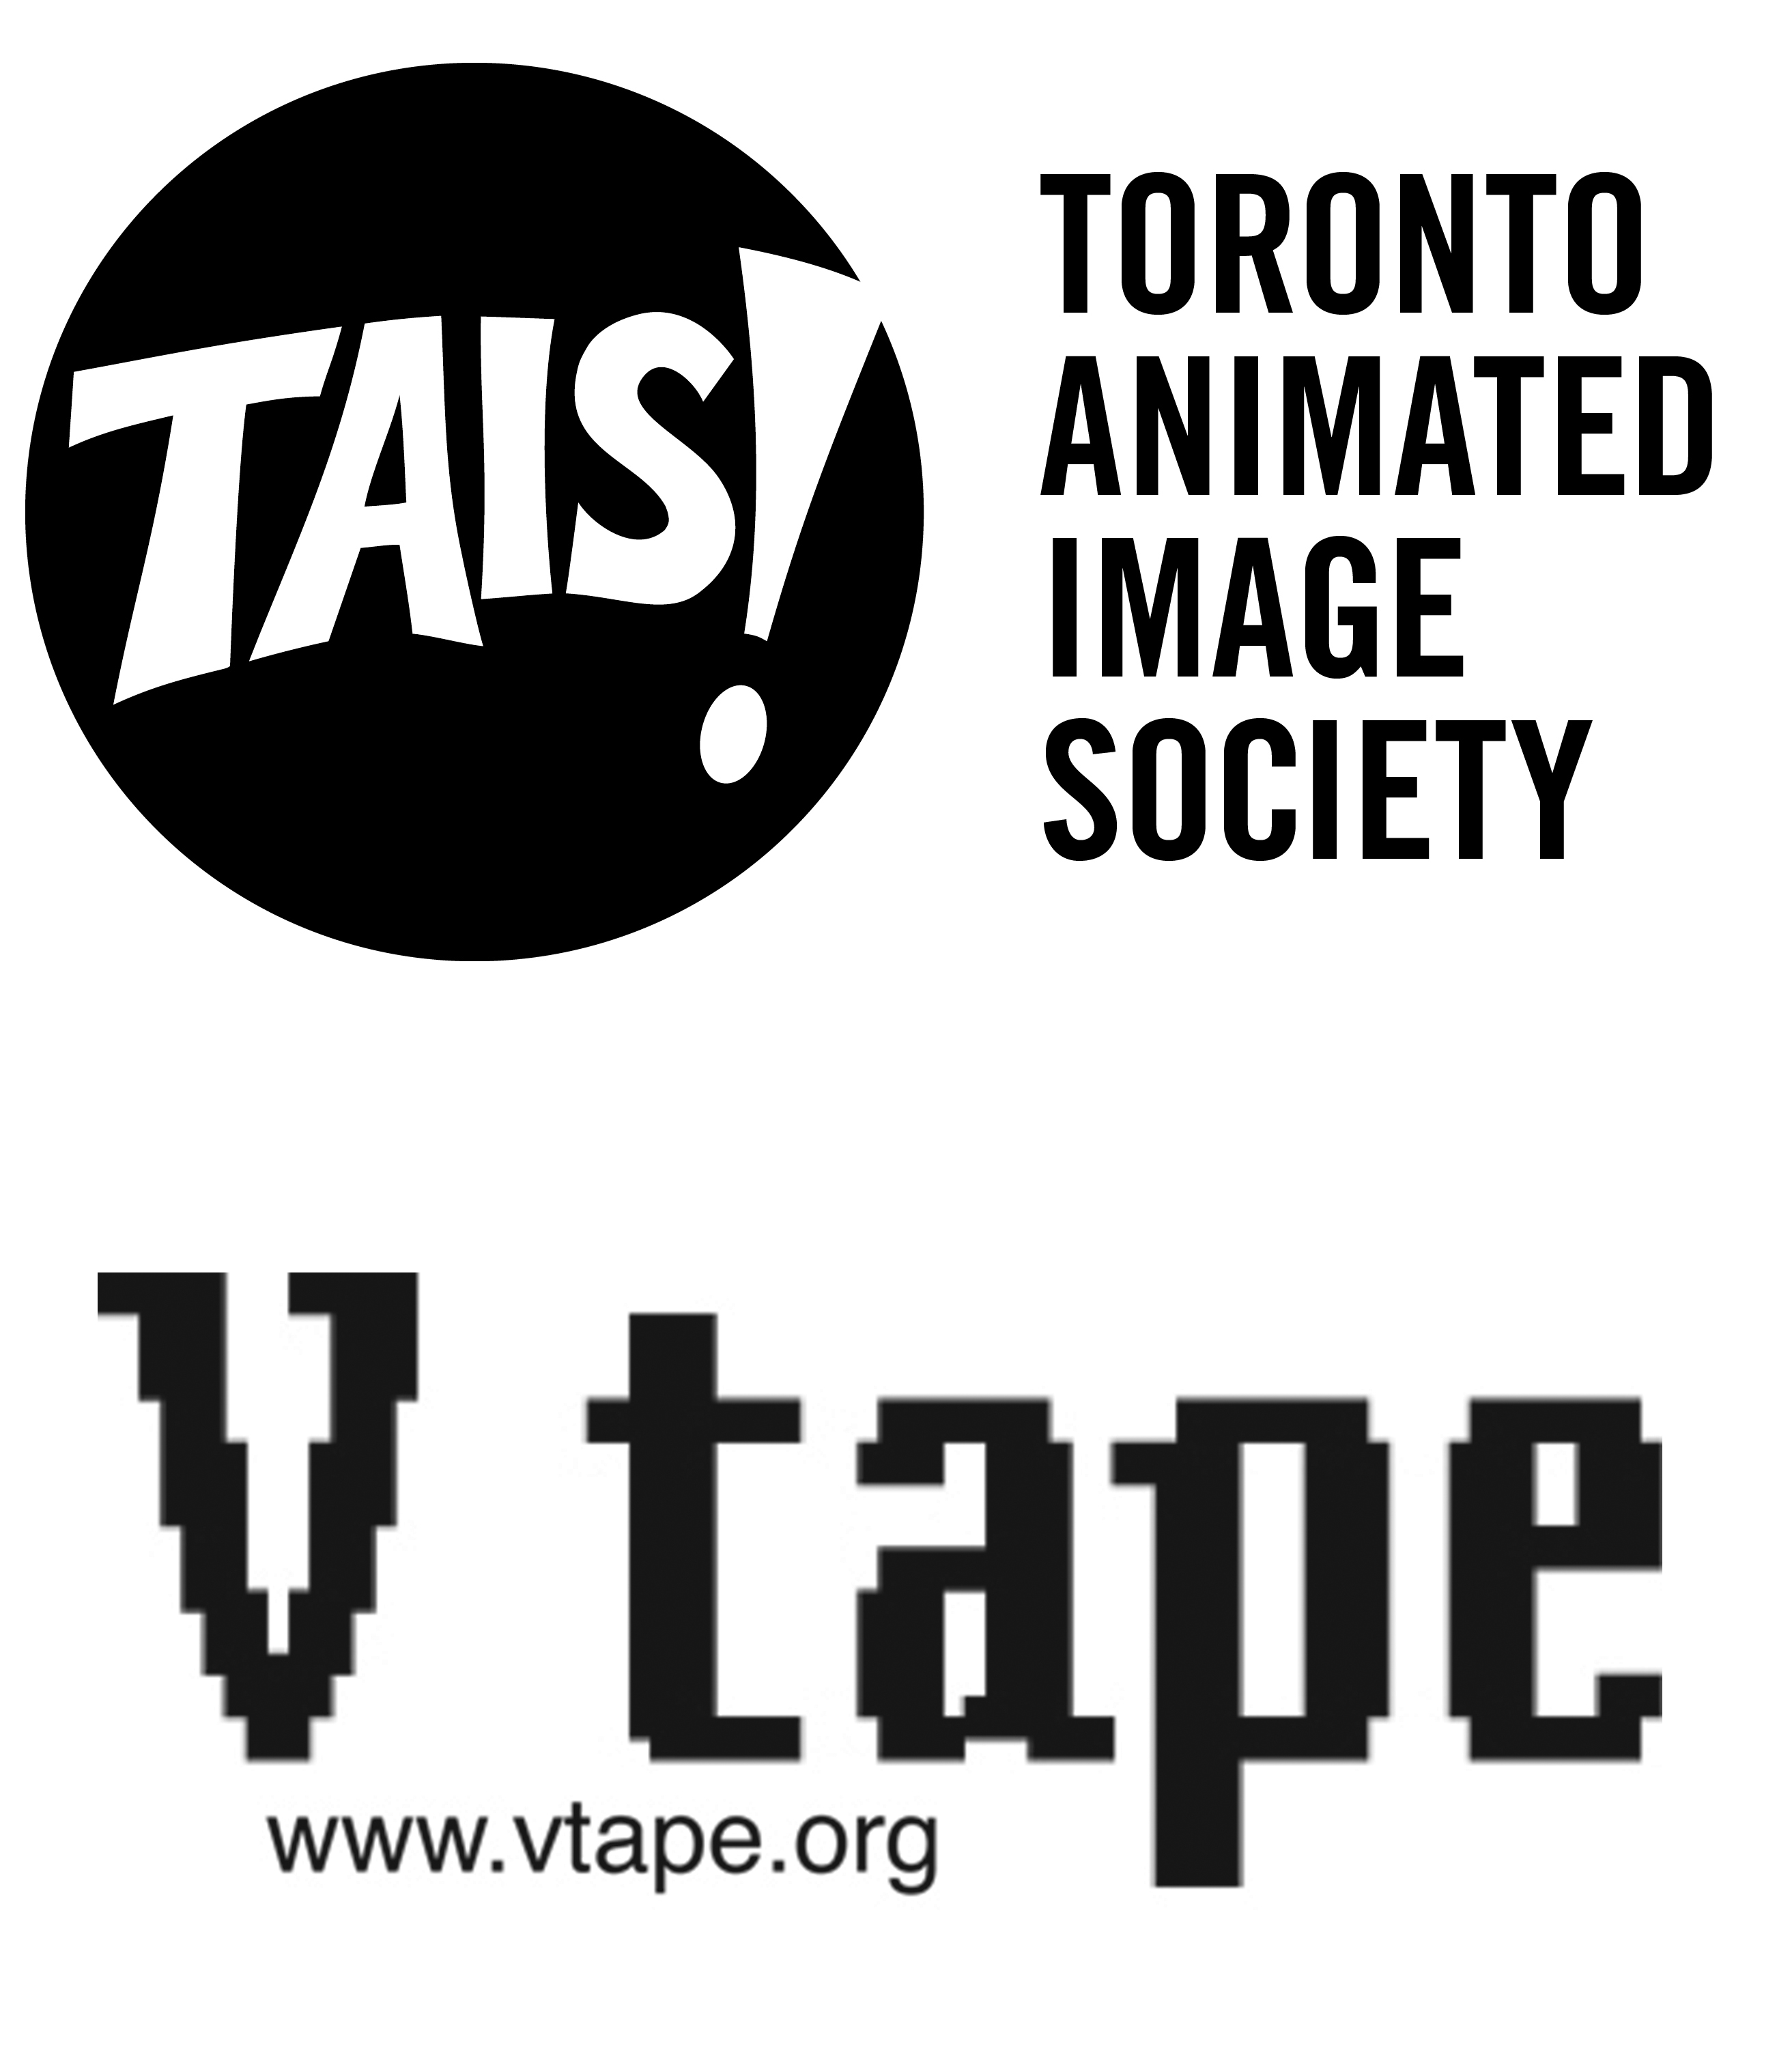 tais-and-vtape_logos